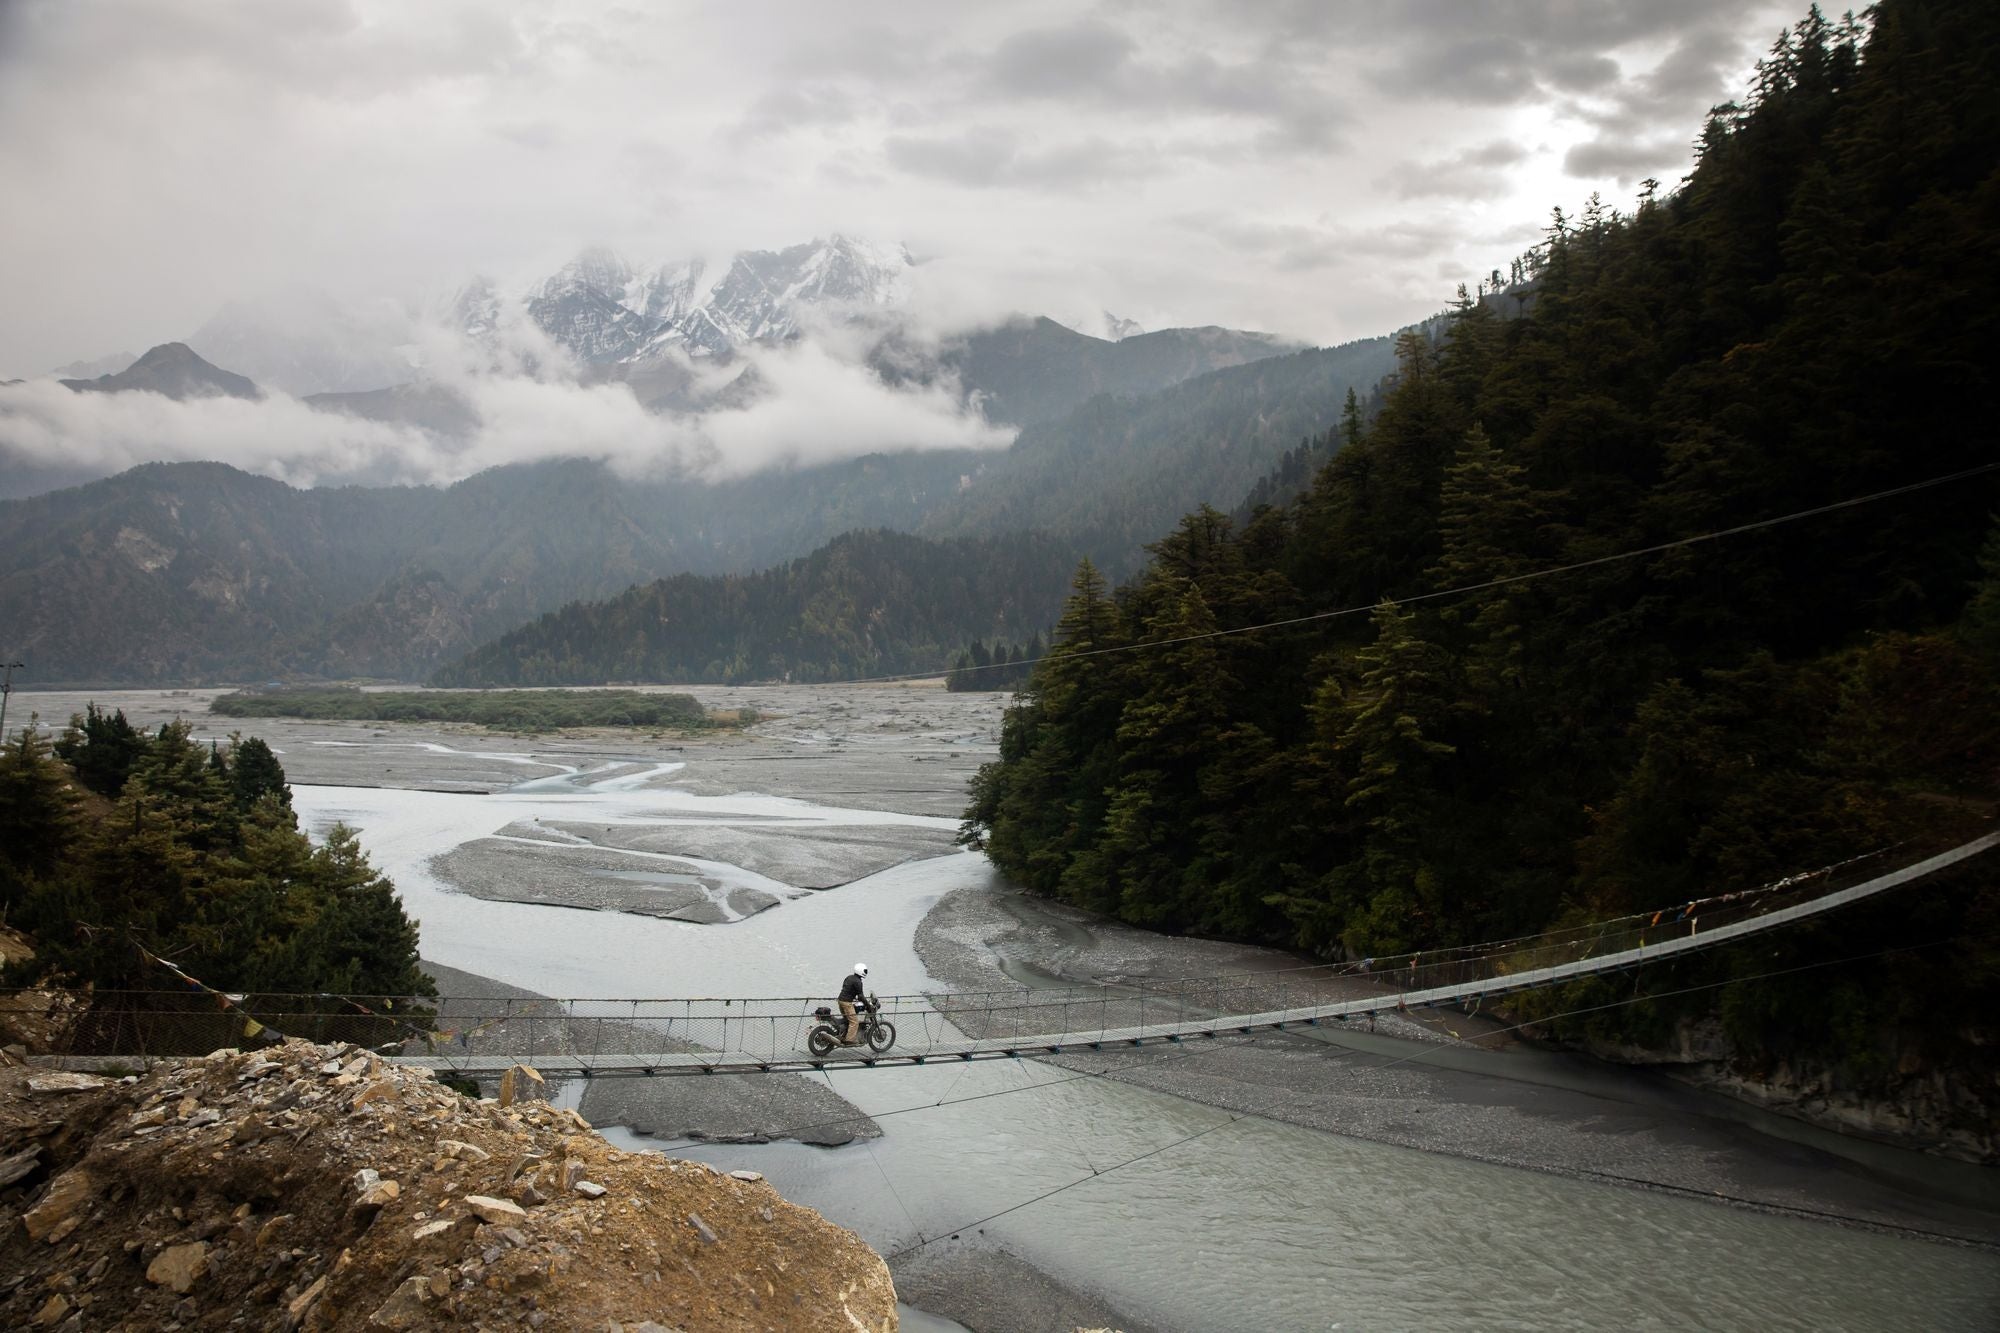 Chasing the Wizard: A Motorcycle Adventure in Nepal